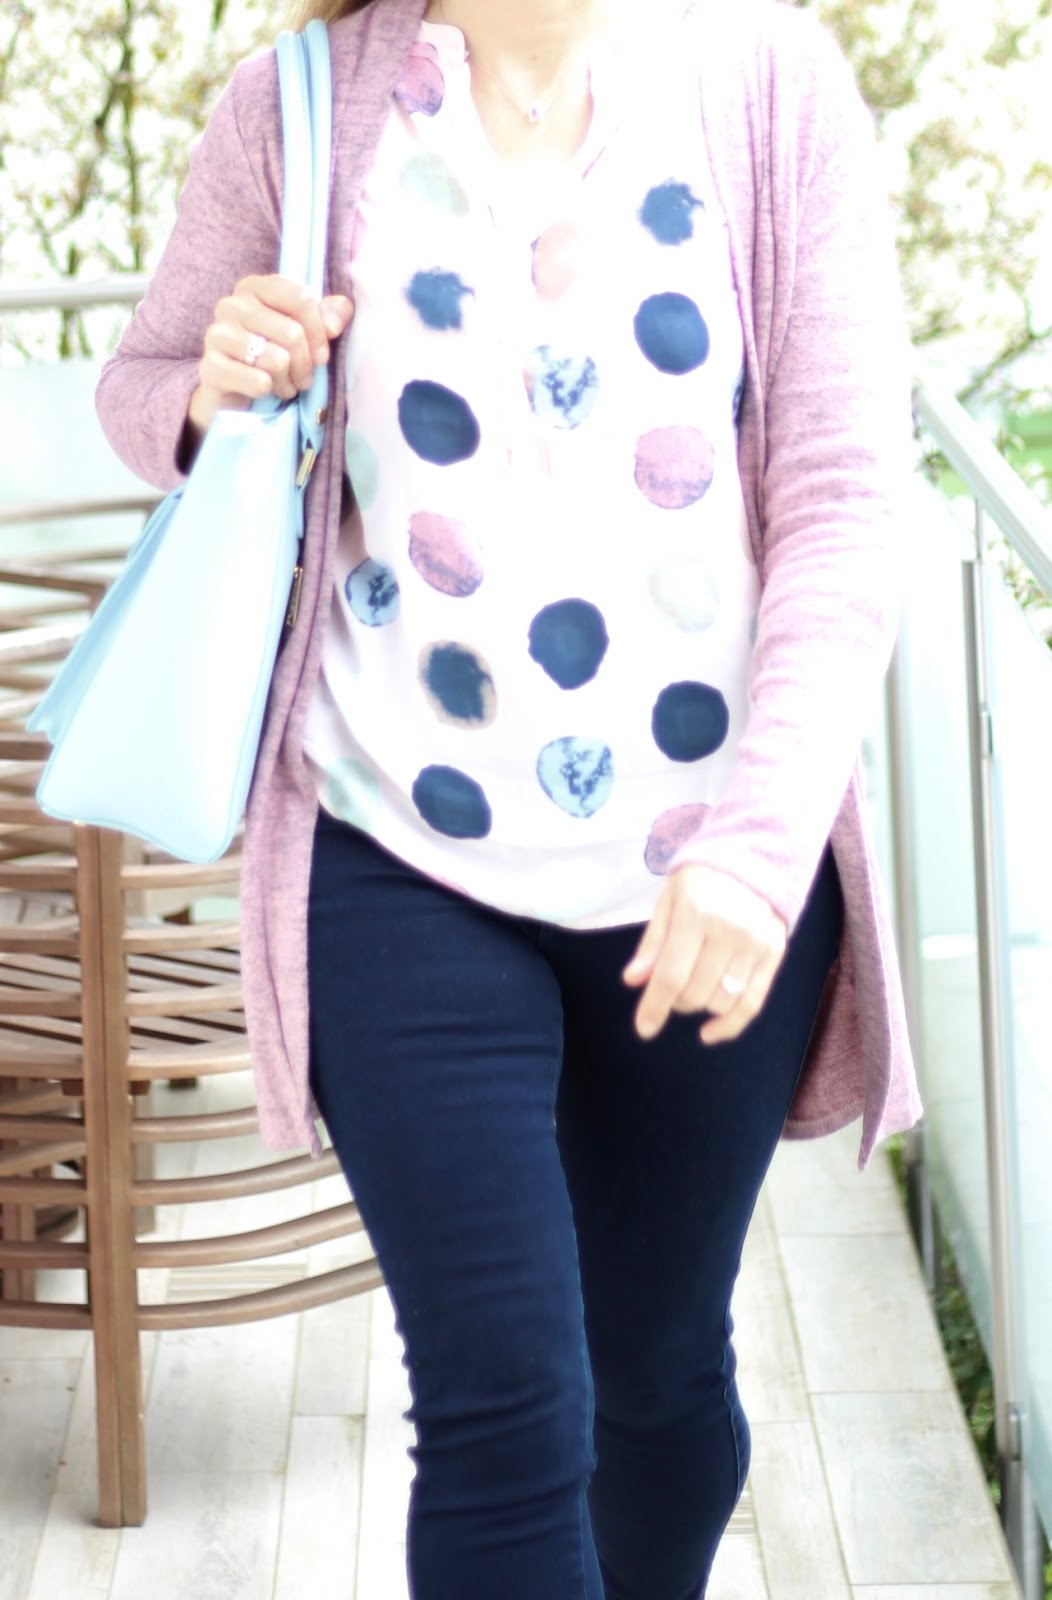 Fashion Friday: Rosa Polka Dot Bluse von Zwillingsherz, Tasche von LYDC London, Jeans von Only, Pumps von s'Oliver